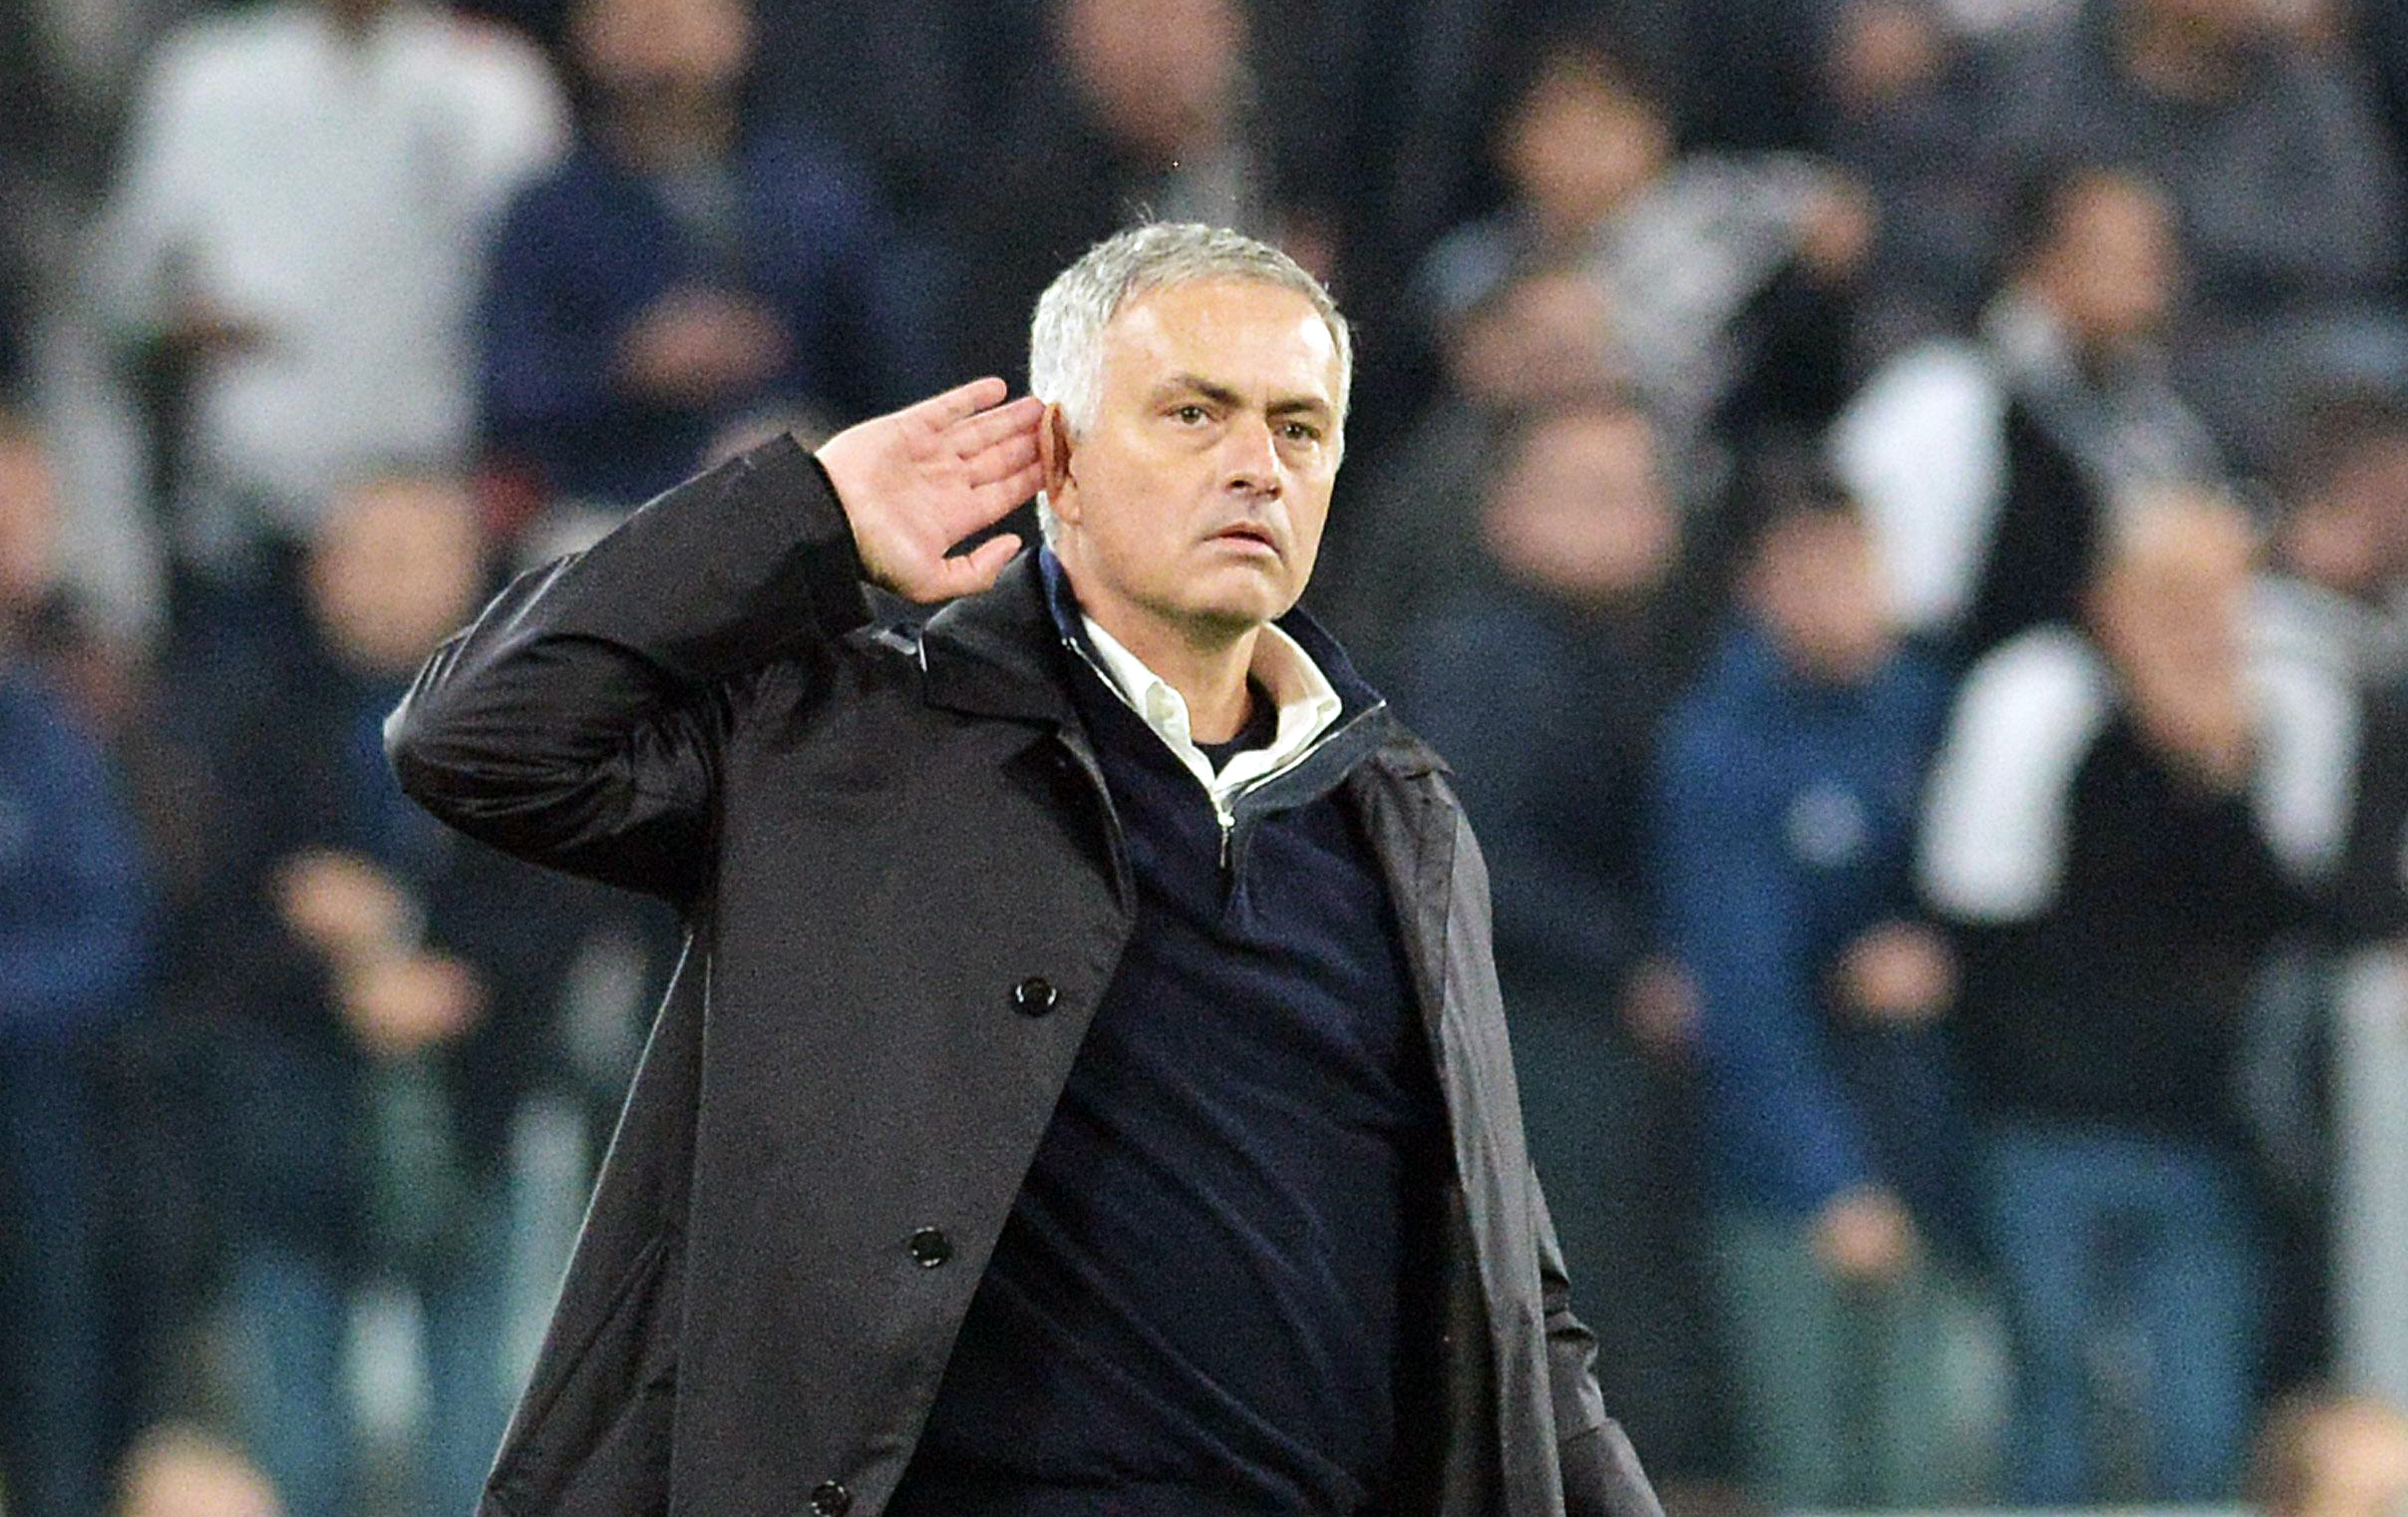 Mourinho: Clearly I am still building this Man Utd team